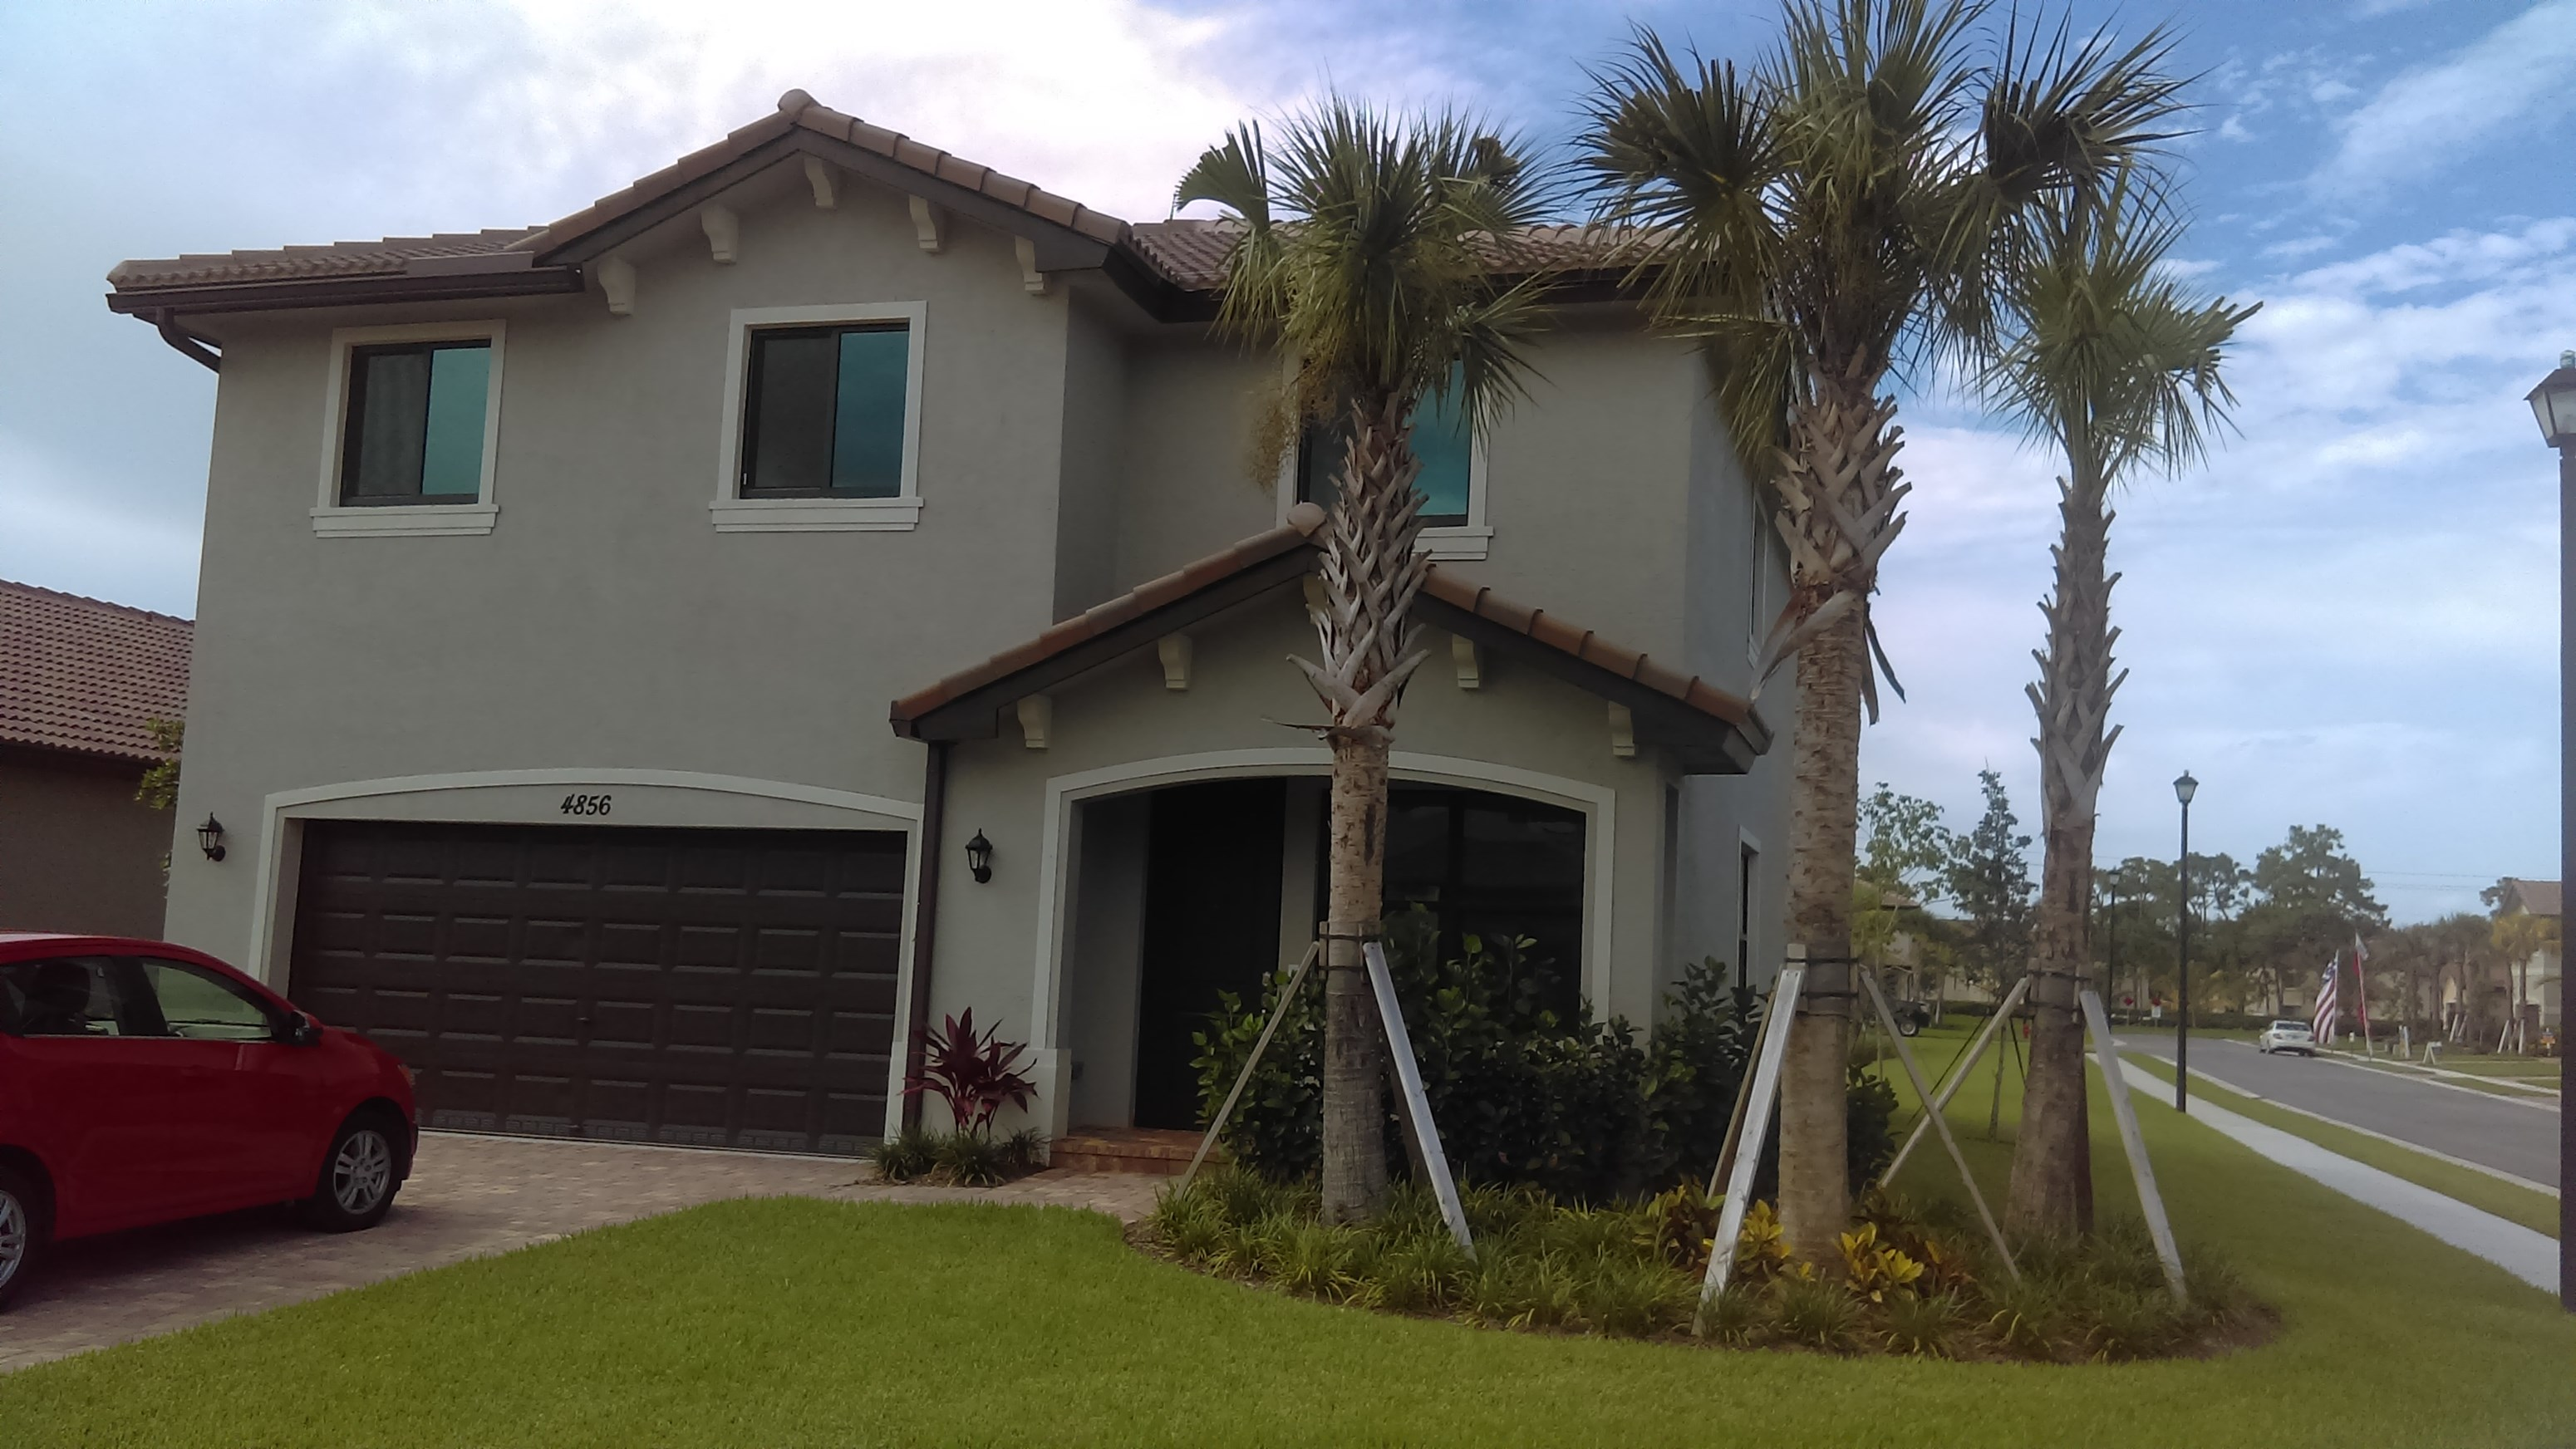 OwnerRooms for Rent in Lake Worth  FL   Apartments  House  Commercial  . Apartments For Rent In Lake Worth Fl. Home Design Ideas